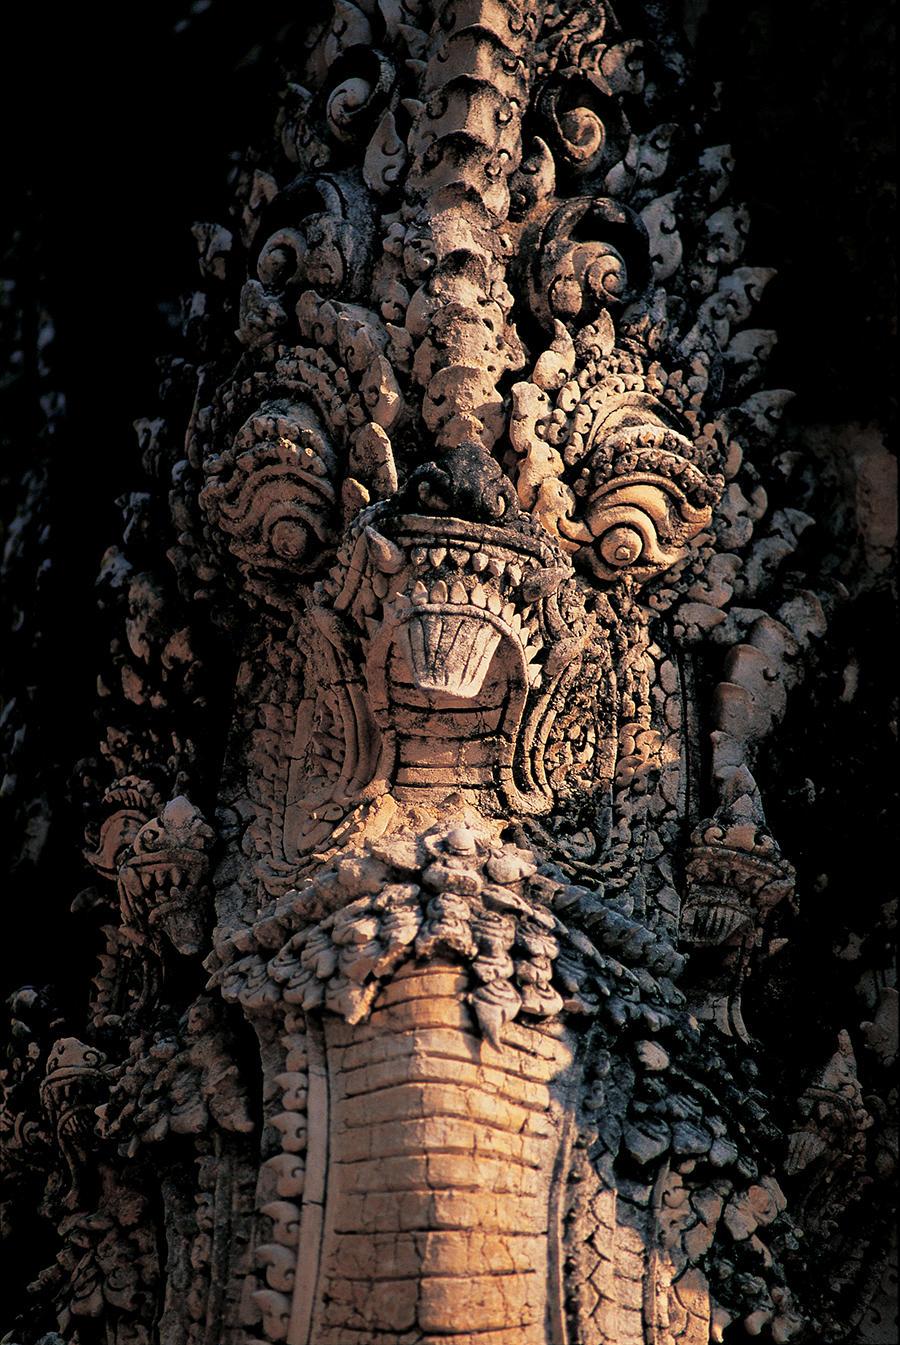 Whether it's Hindu or Buddhist, nagas are found on lintels, form balustrades, and featured above every entry in ancient temples throughout Thailand and Cambodia. Photo:Sukhothai, Thailand